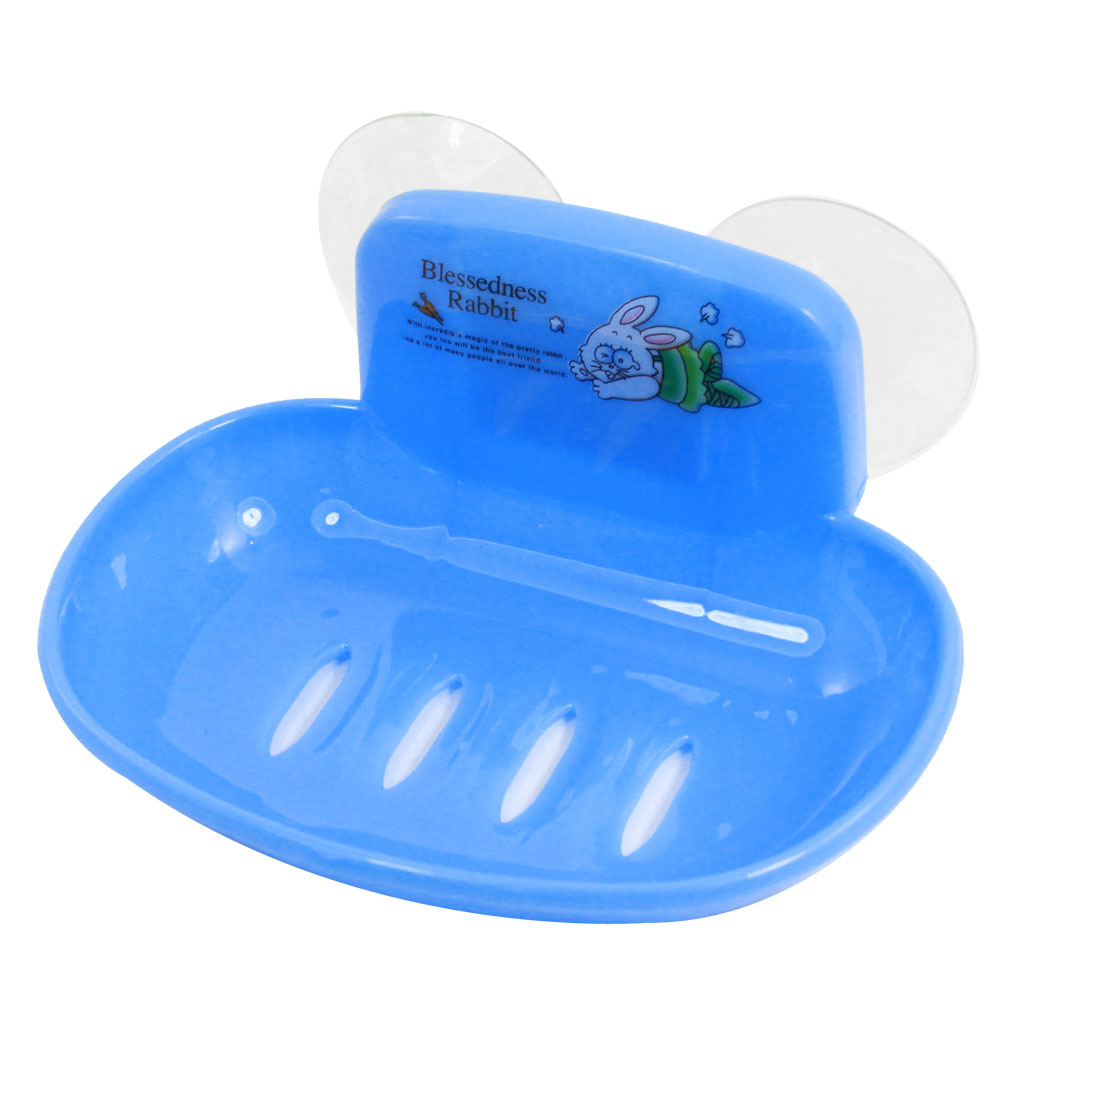 Bathroom Rabbit Pattern Blue Plastic Single Soap Holder Dish Case Box w Suction Cup